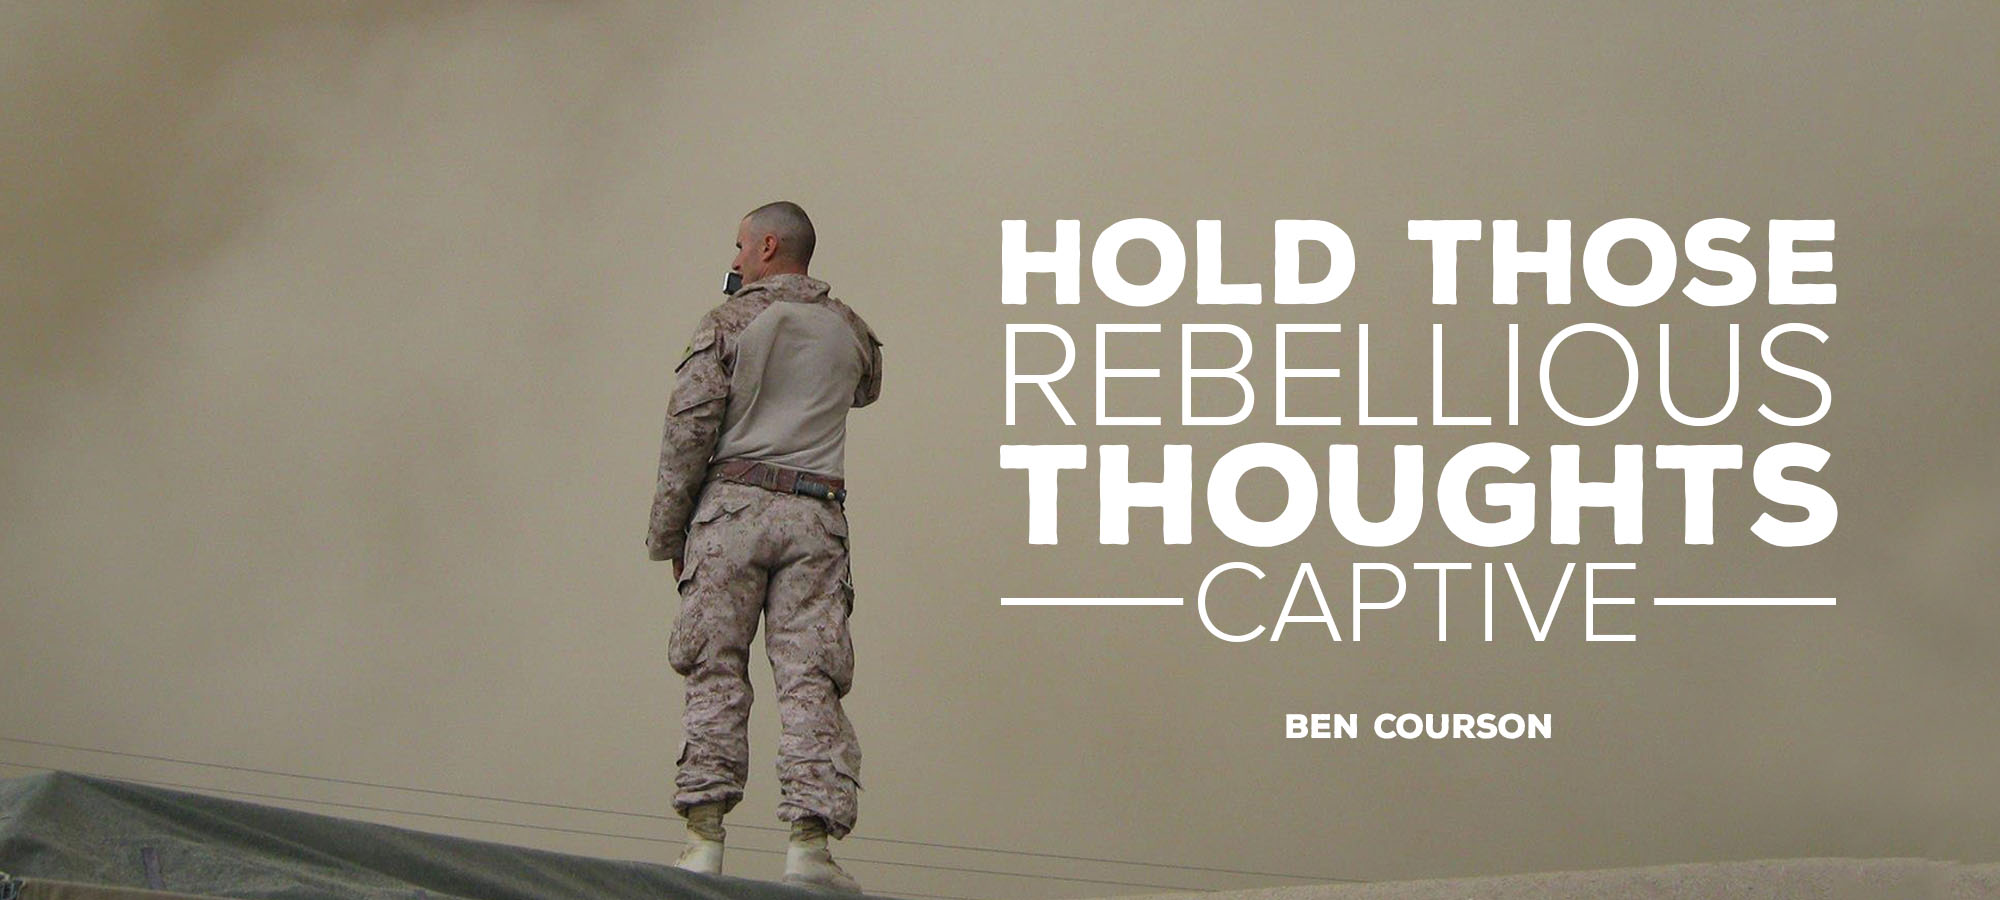 Hold Those Rebellious Thoughts Captive